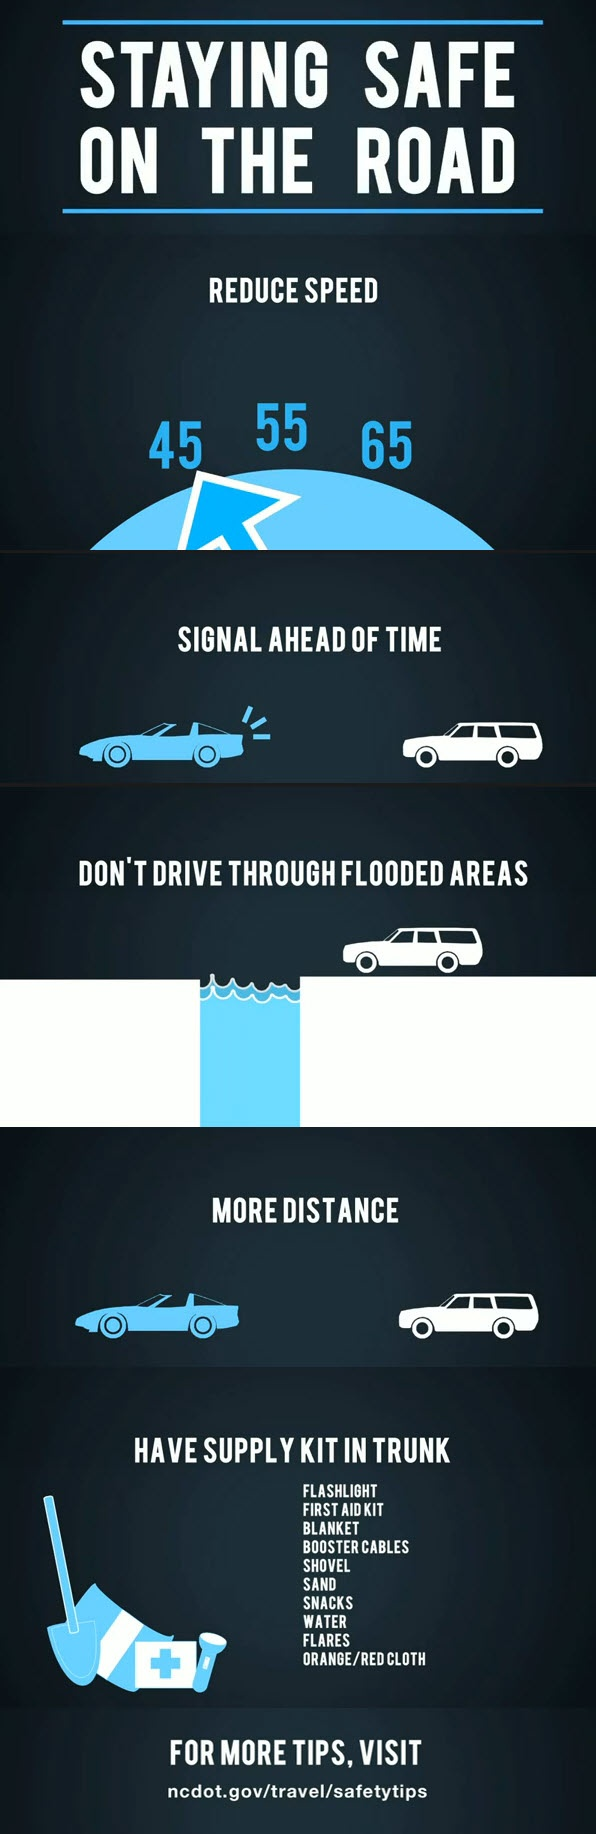 Senior Drivers Tips -Here are some tips for staying safe on the road in wet,stormy weather.